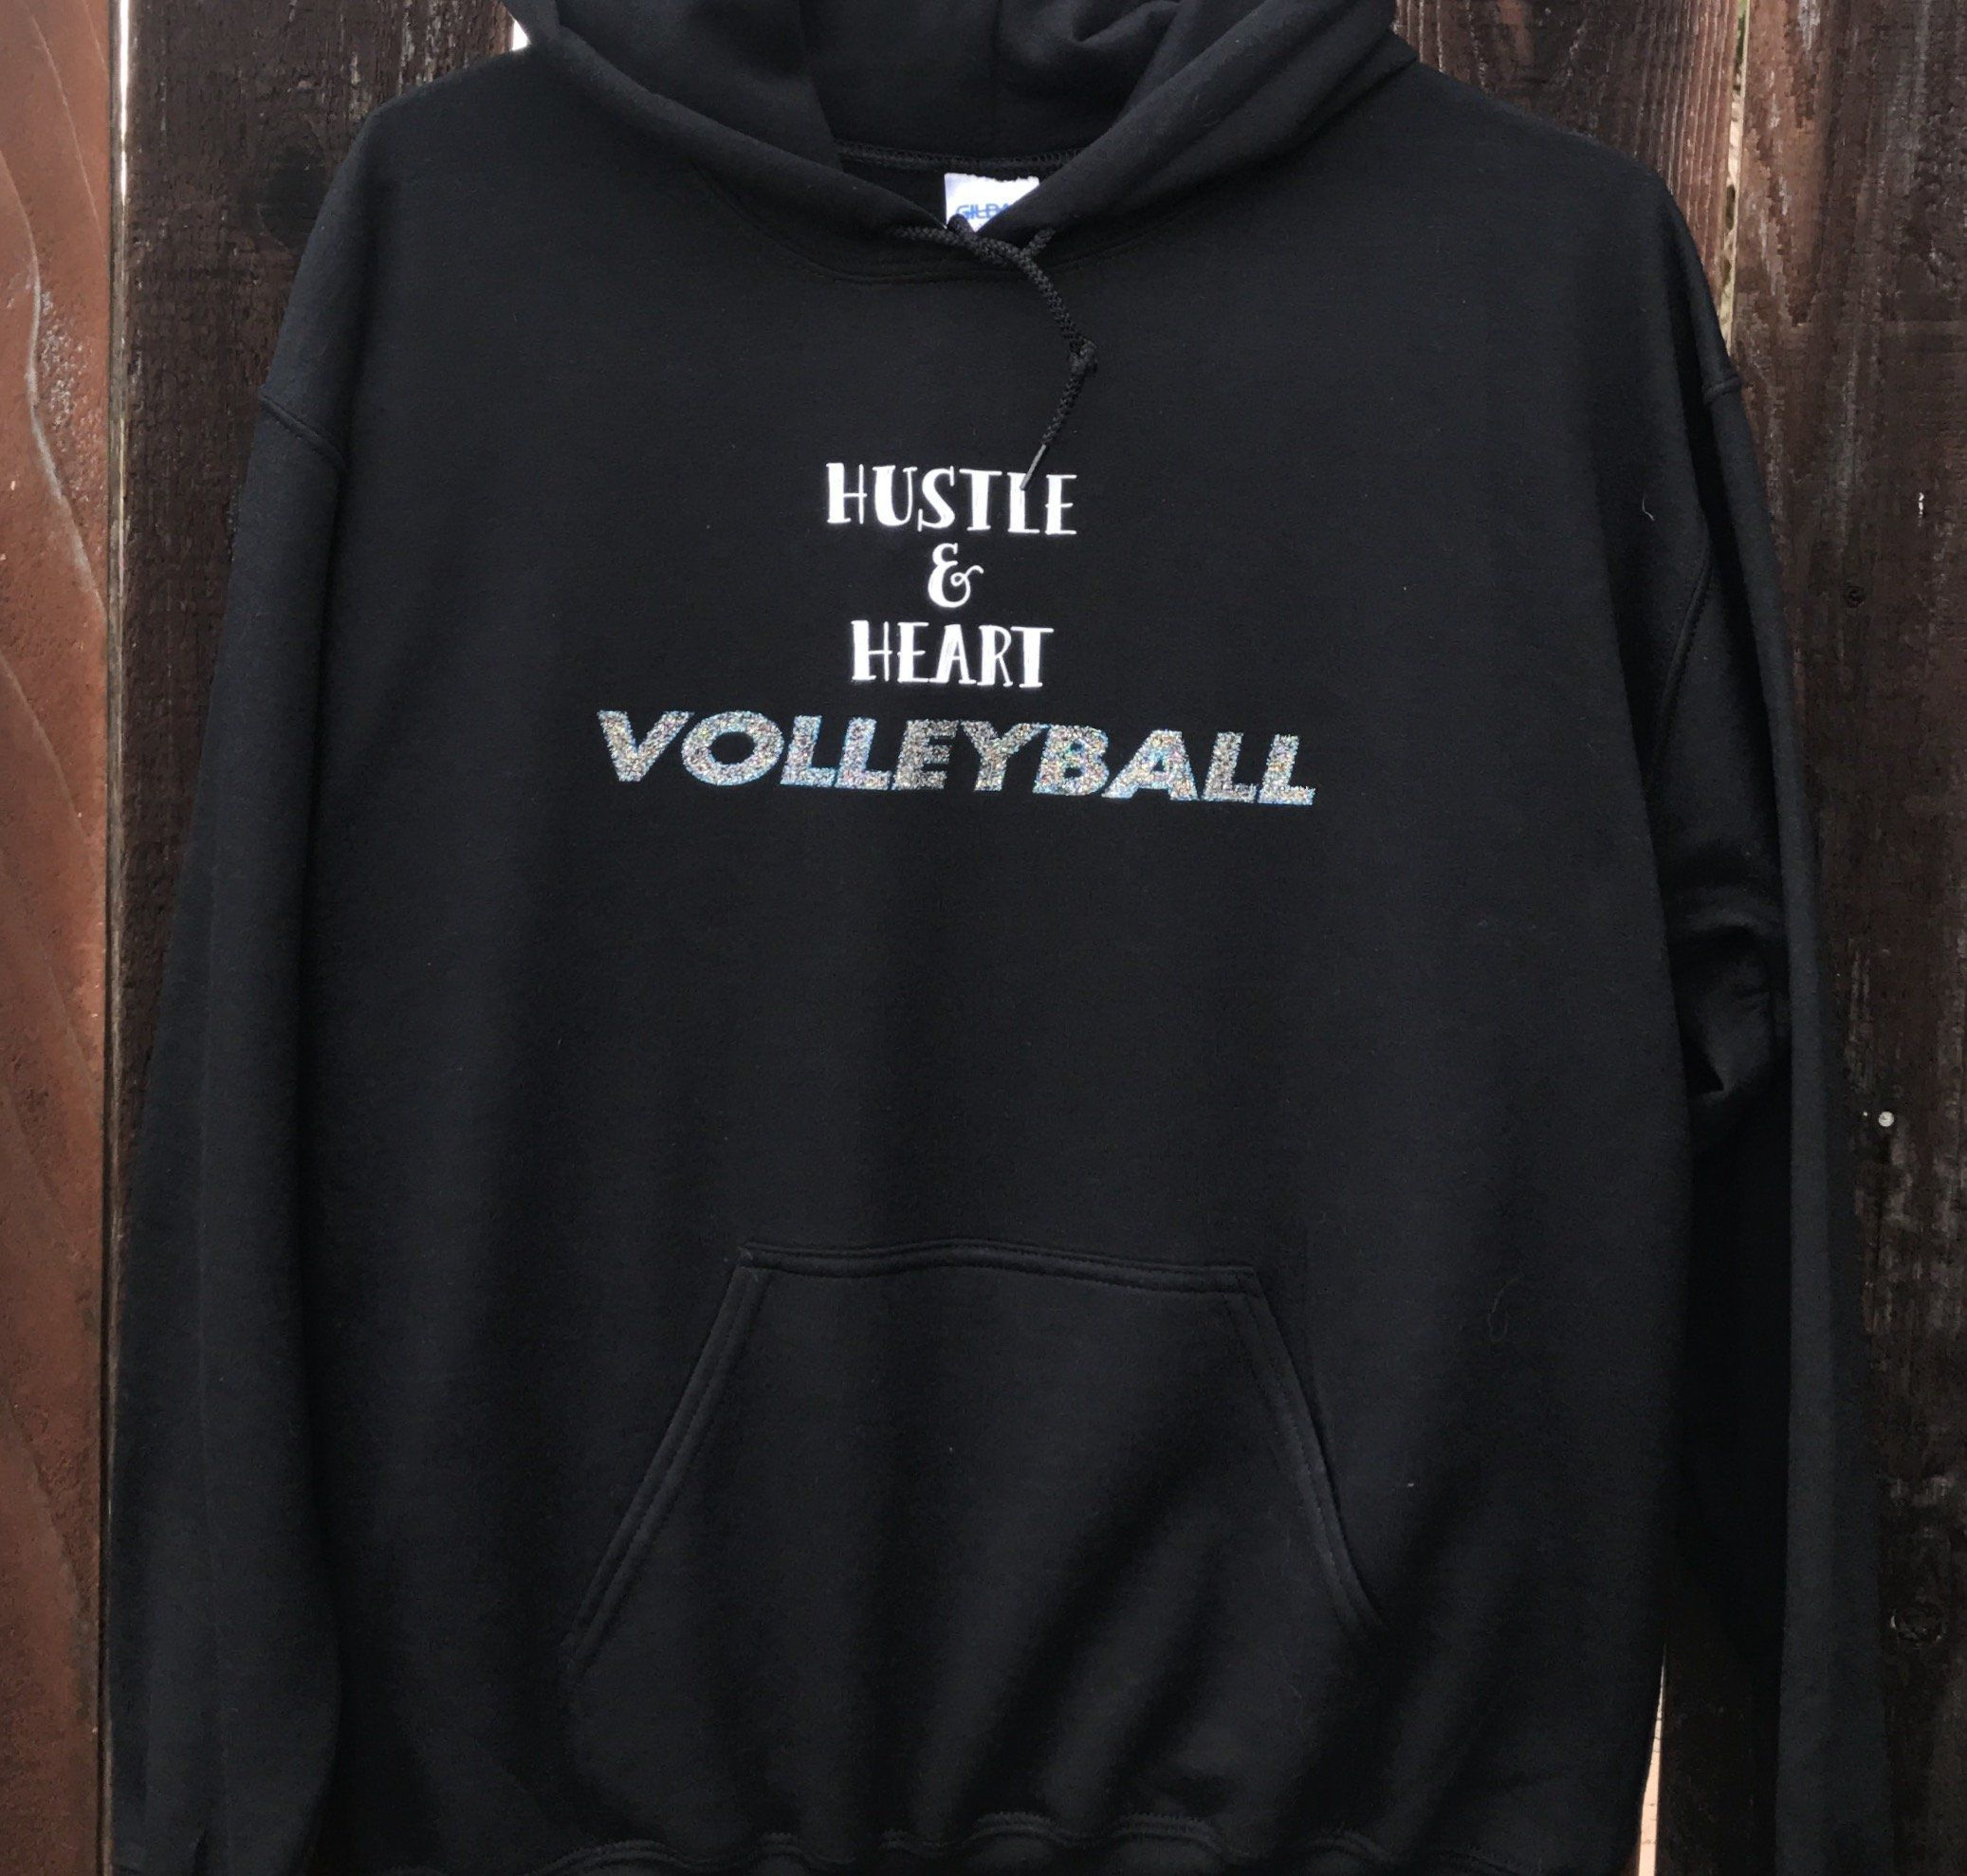 Hustle And Heart Volleyball Glitter Hooded Sweatshirt Hooded Sweatshirts Spirit Wear Volleyball